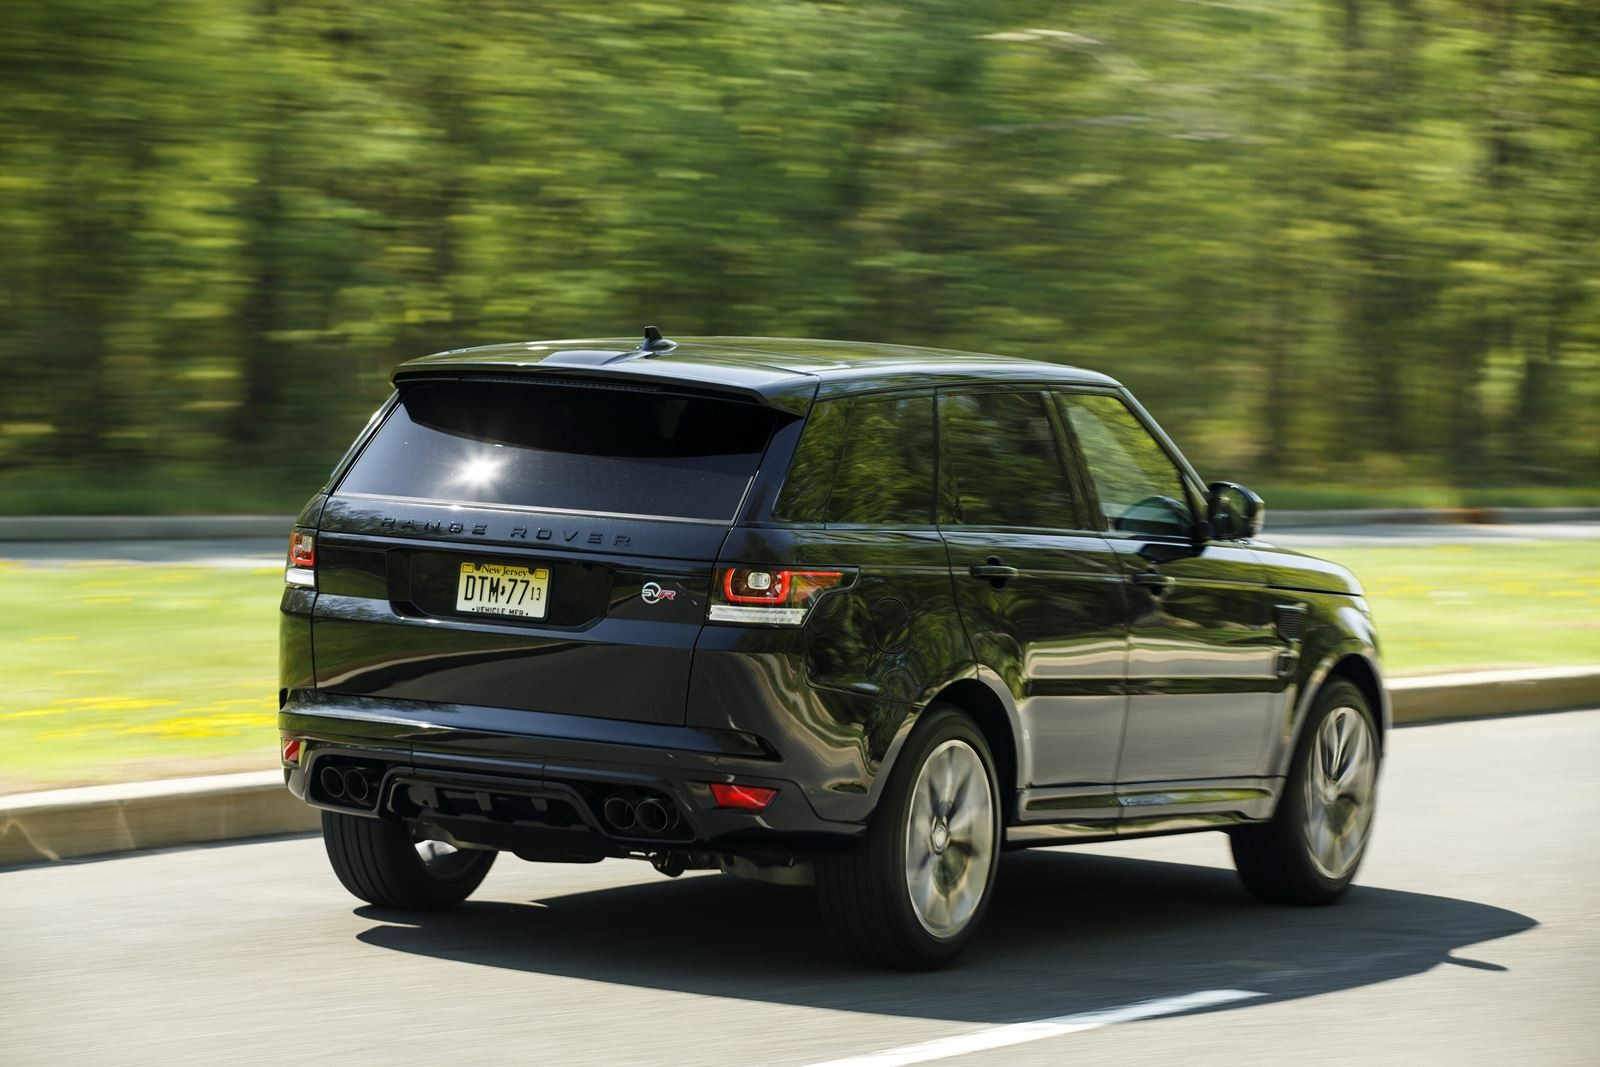 2015 range rover sport svr. Black Bedroom Furniture Sets. Home Design Ideas